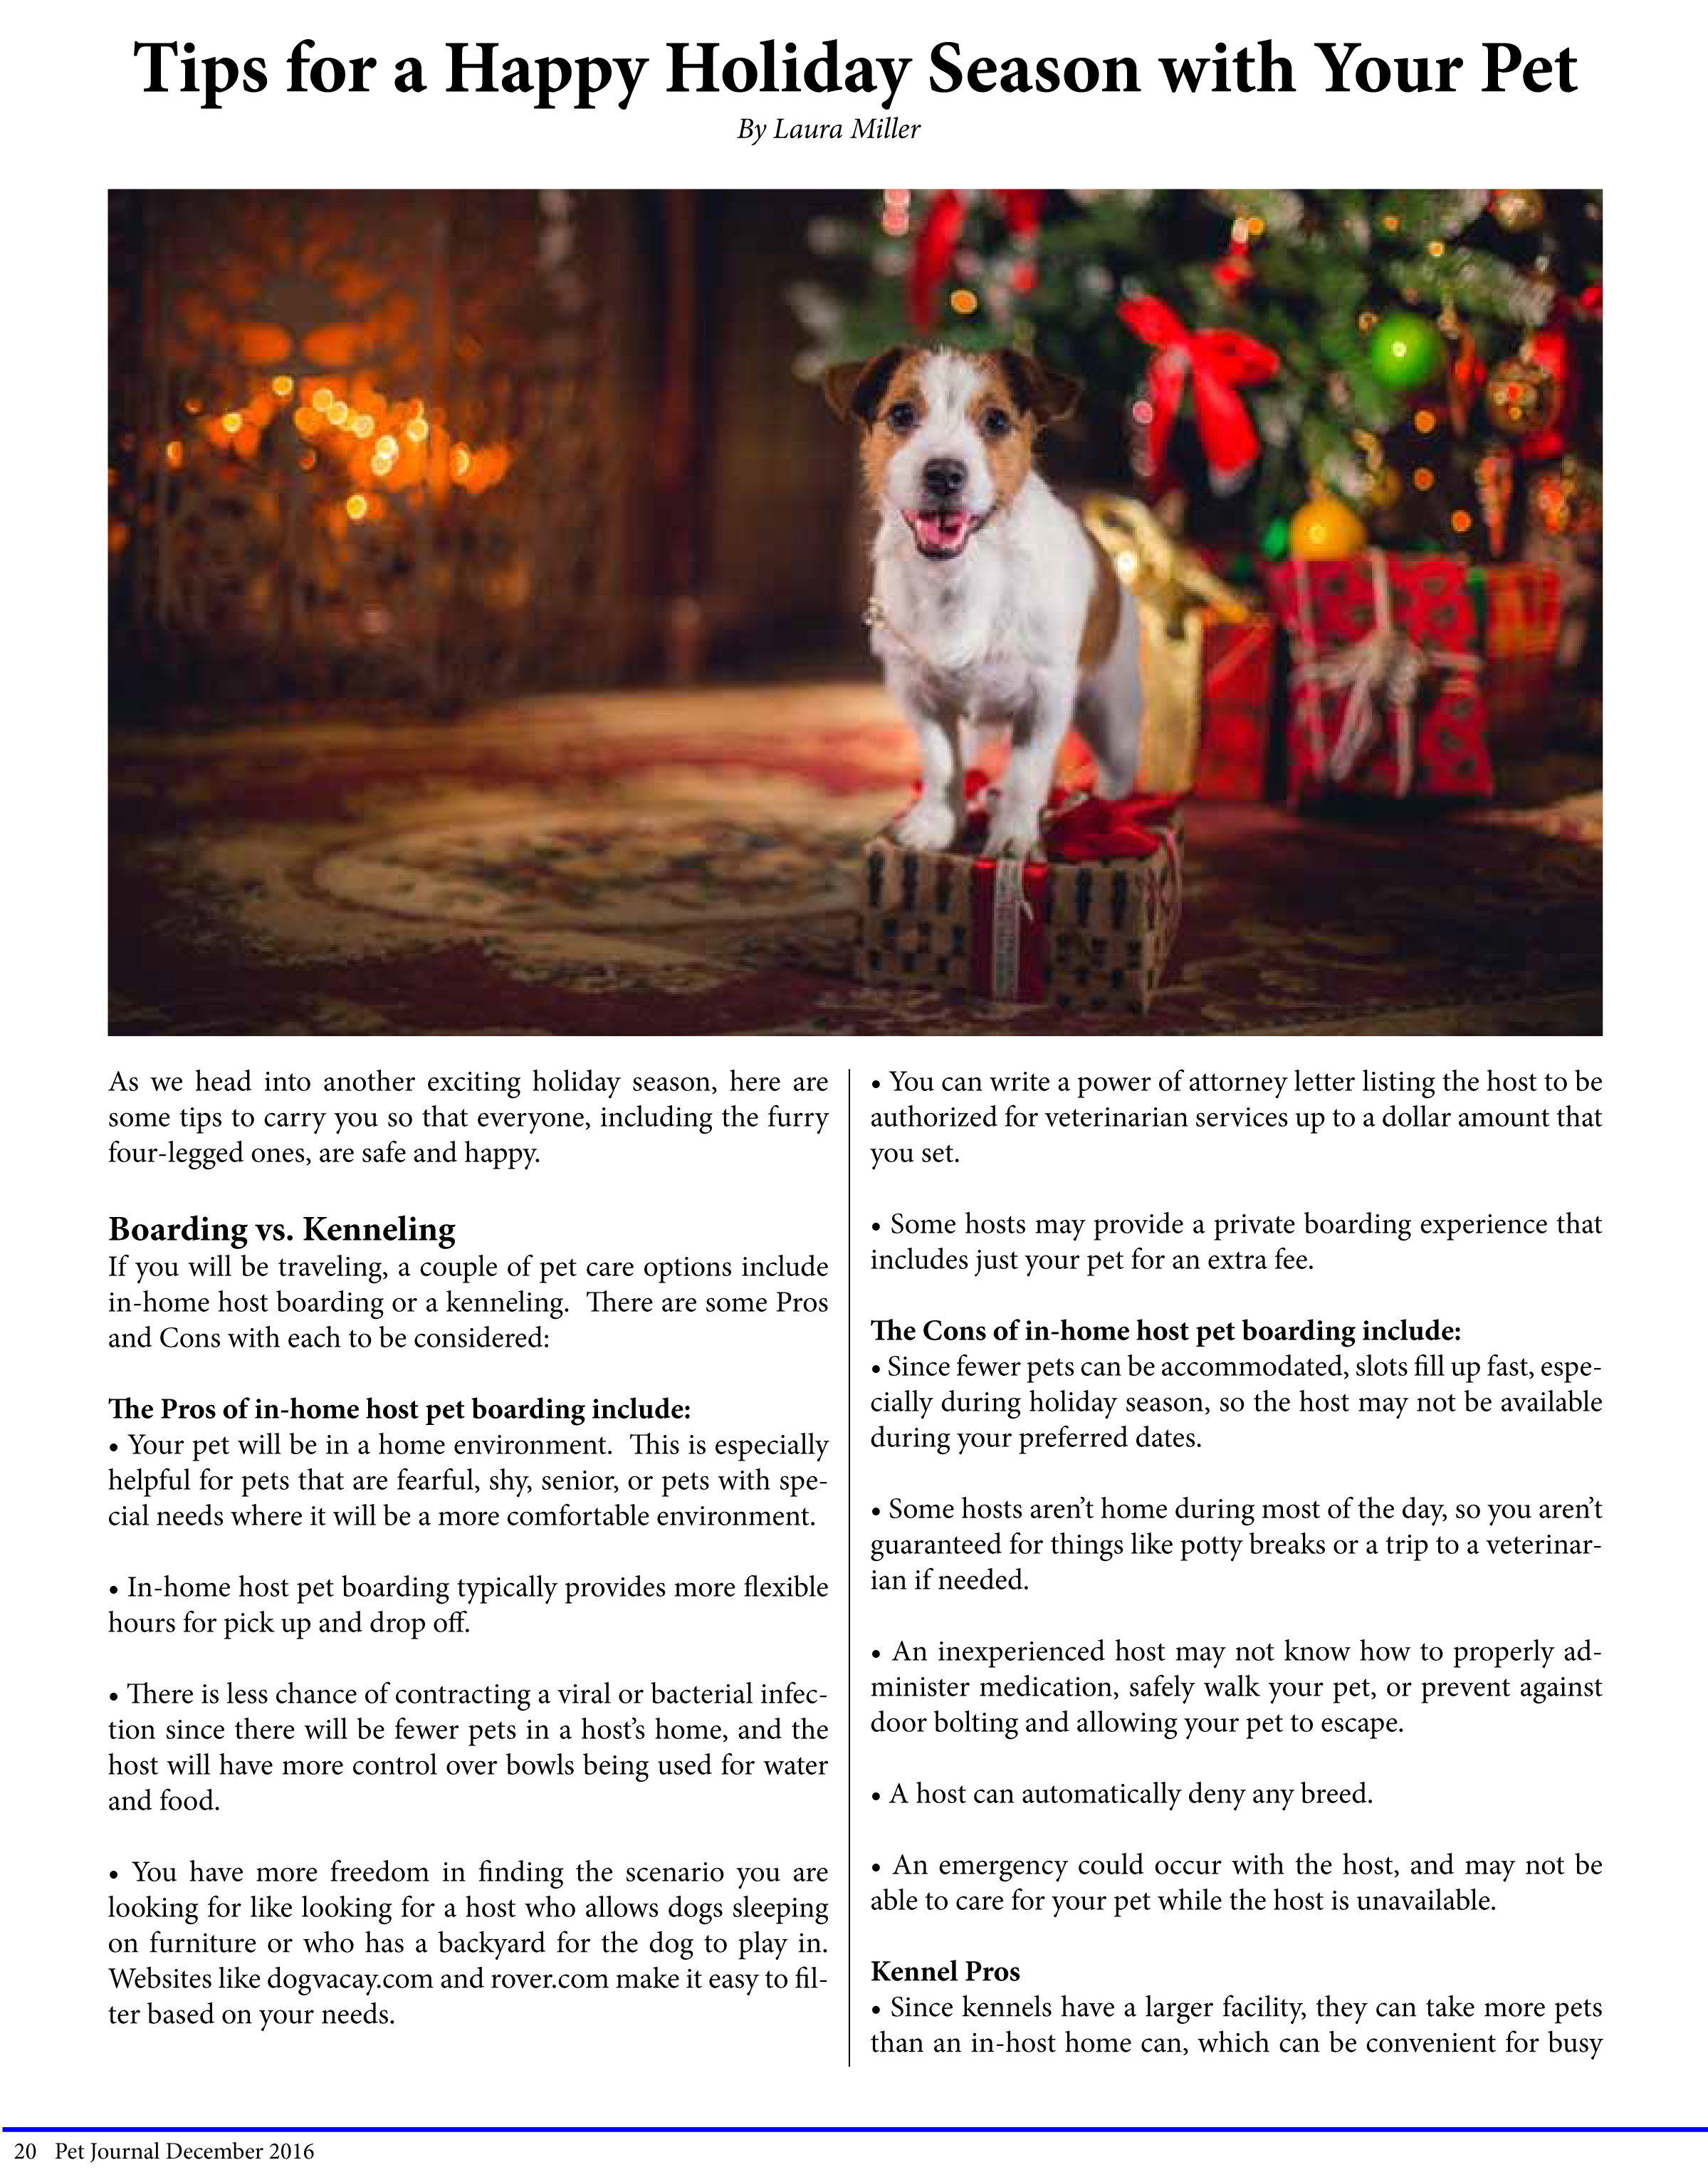 Tips for a Happy Holiday Season with Your Pet